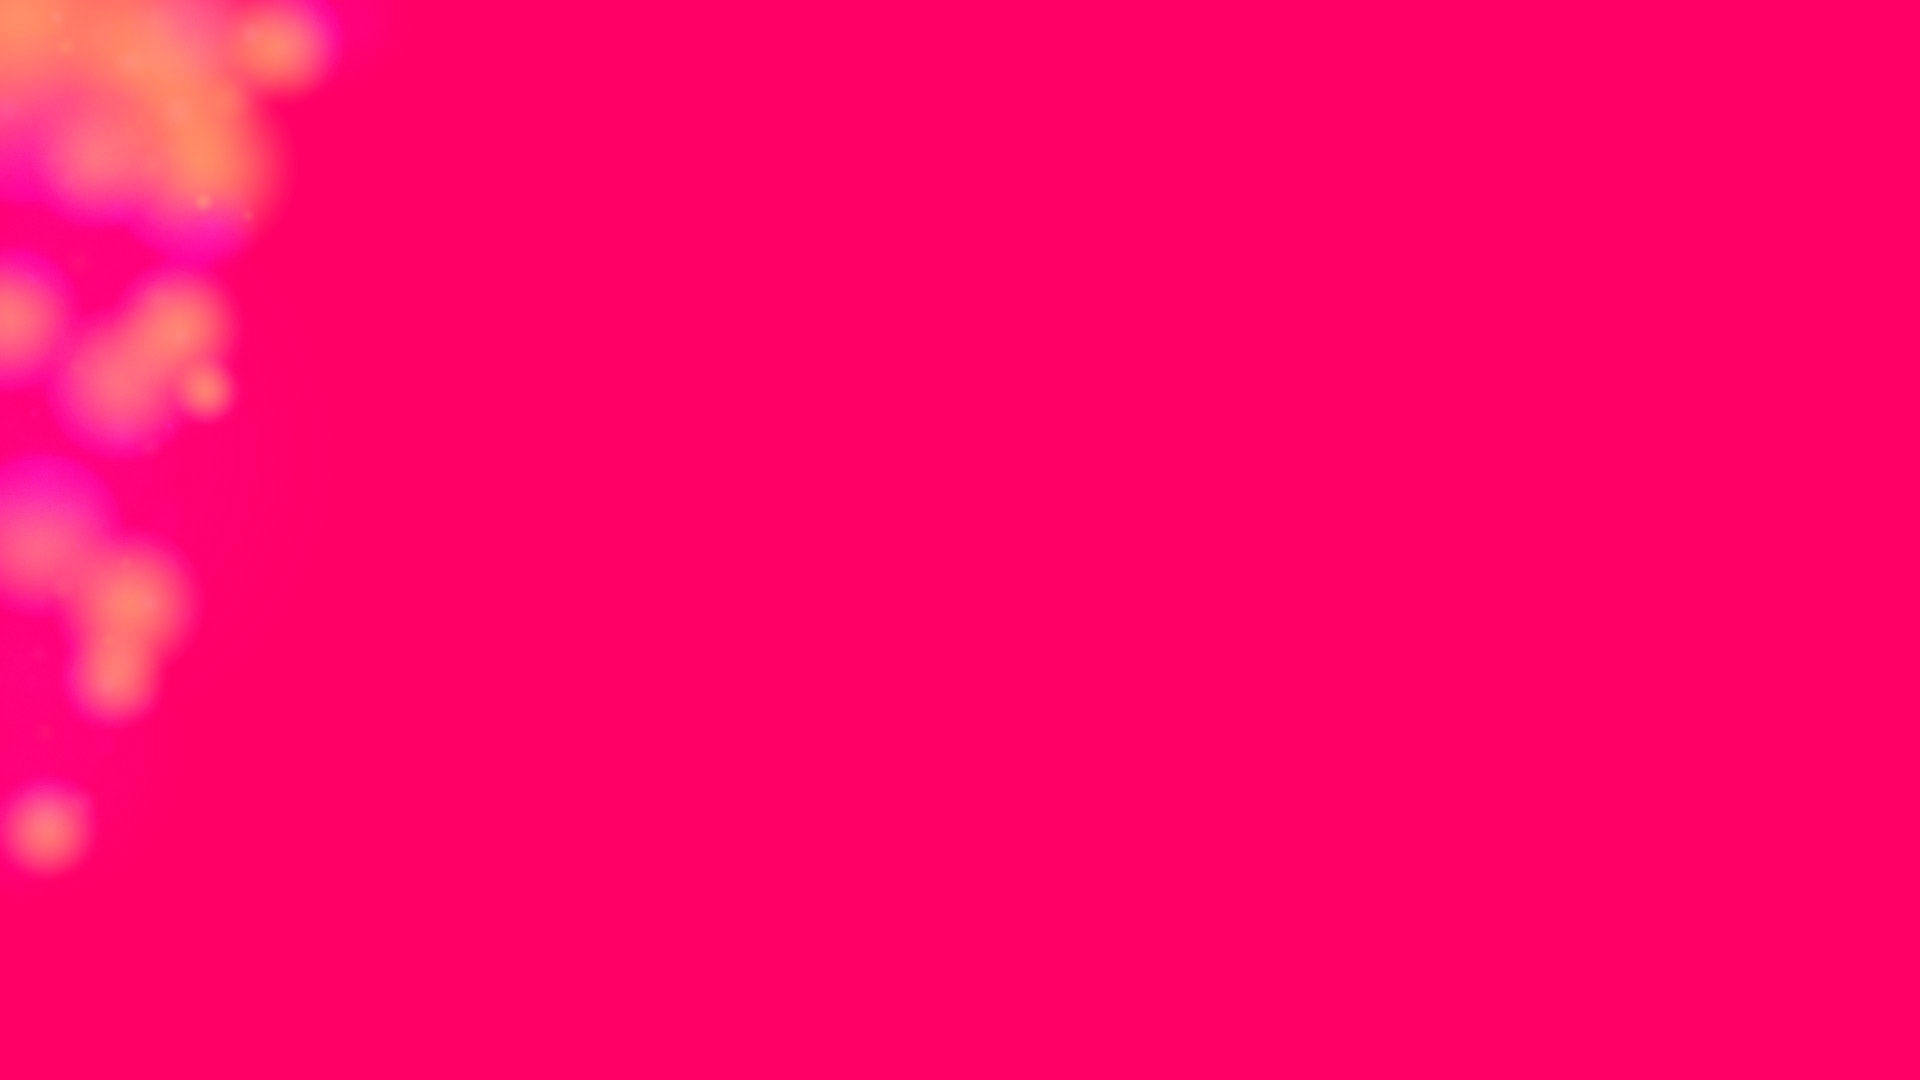 Pink Background High Definition